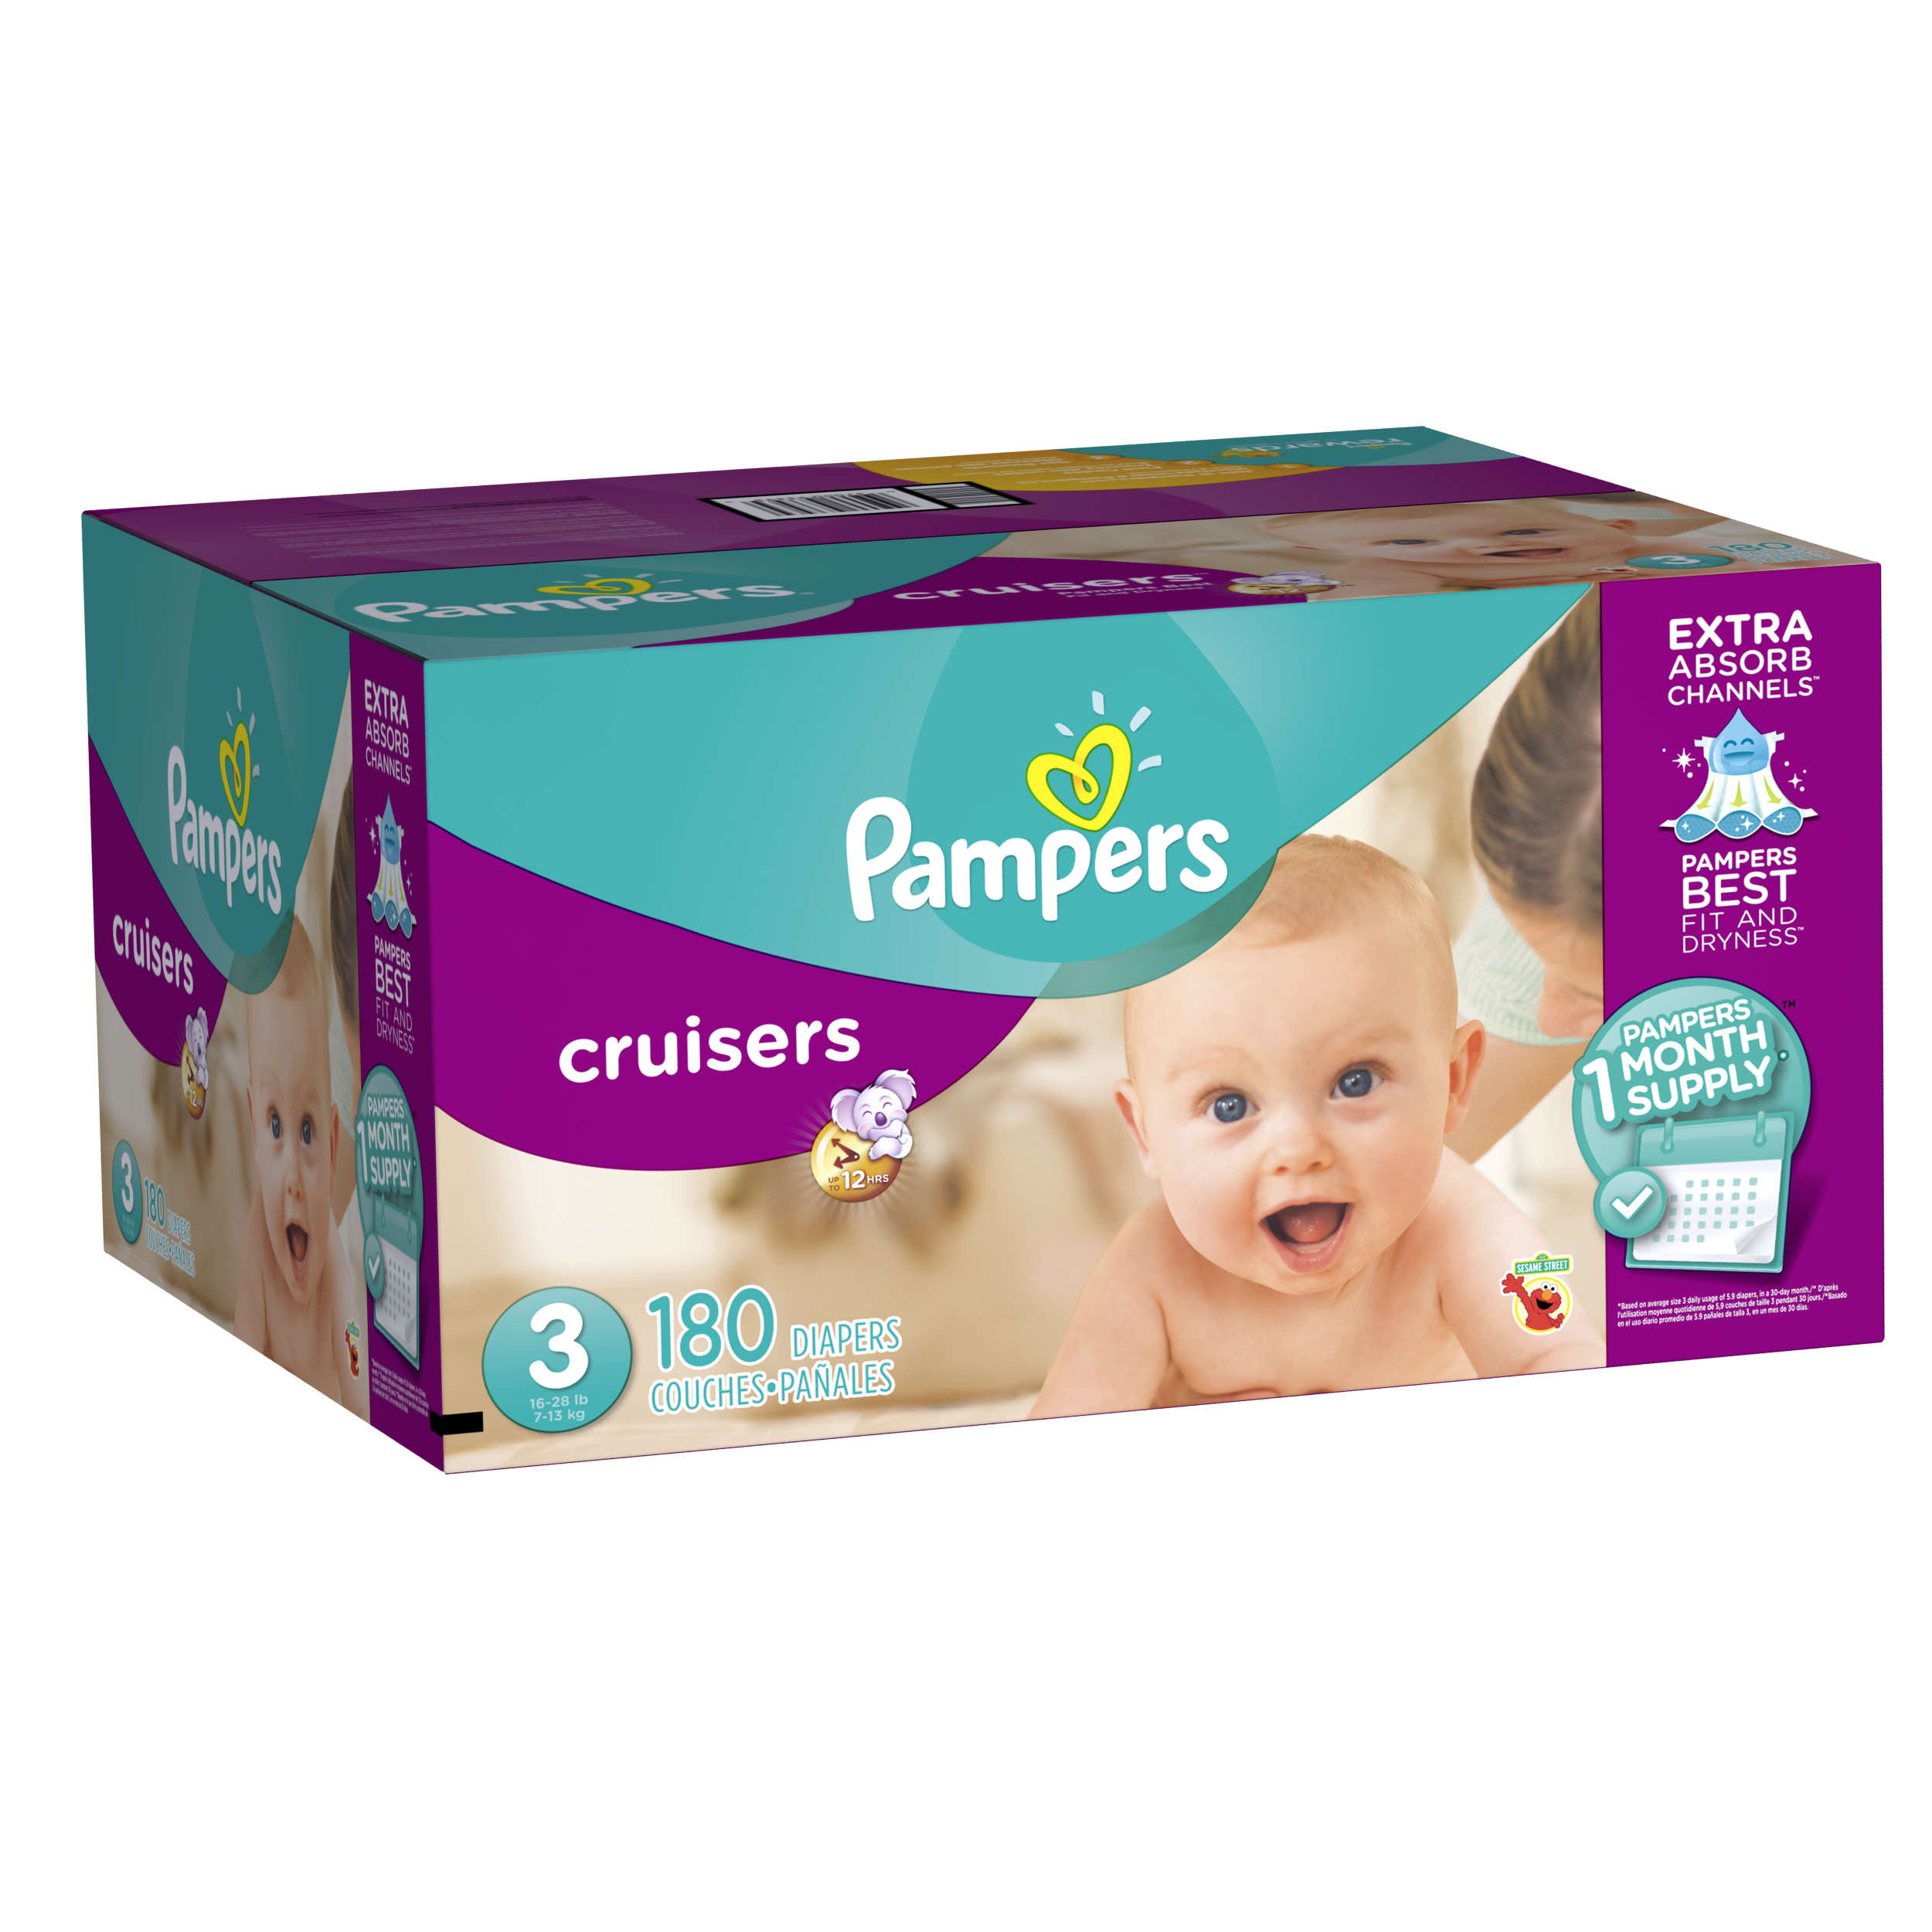 Pampers Cruisers Diapers, Size 3, 140 Diapers